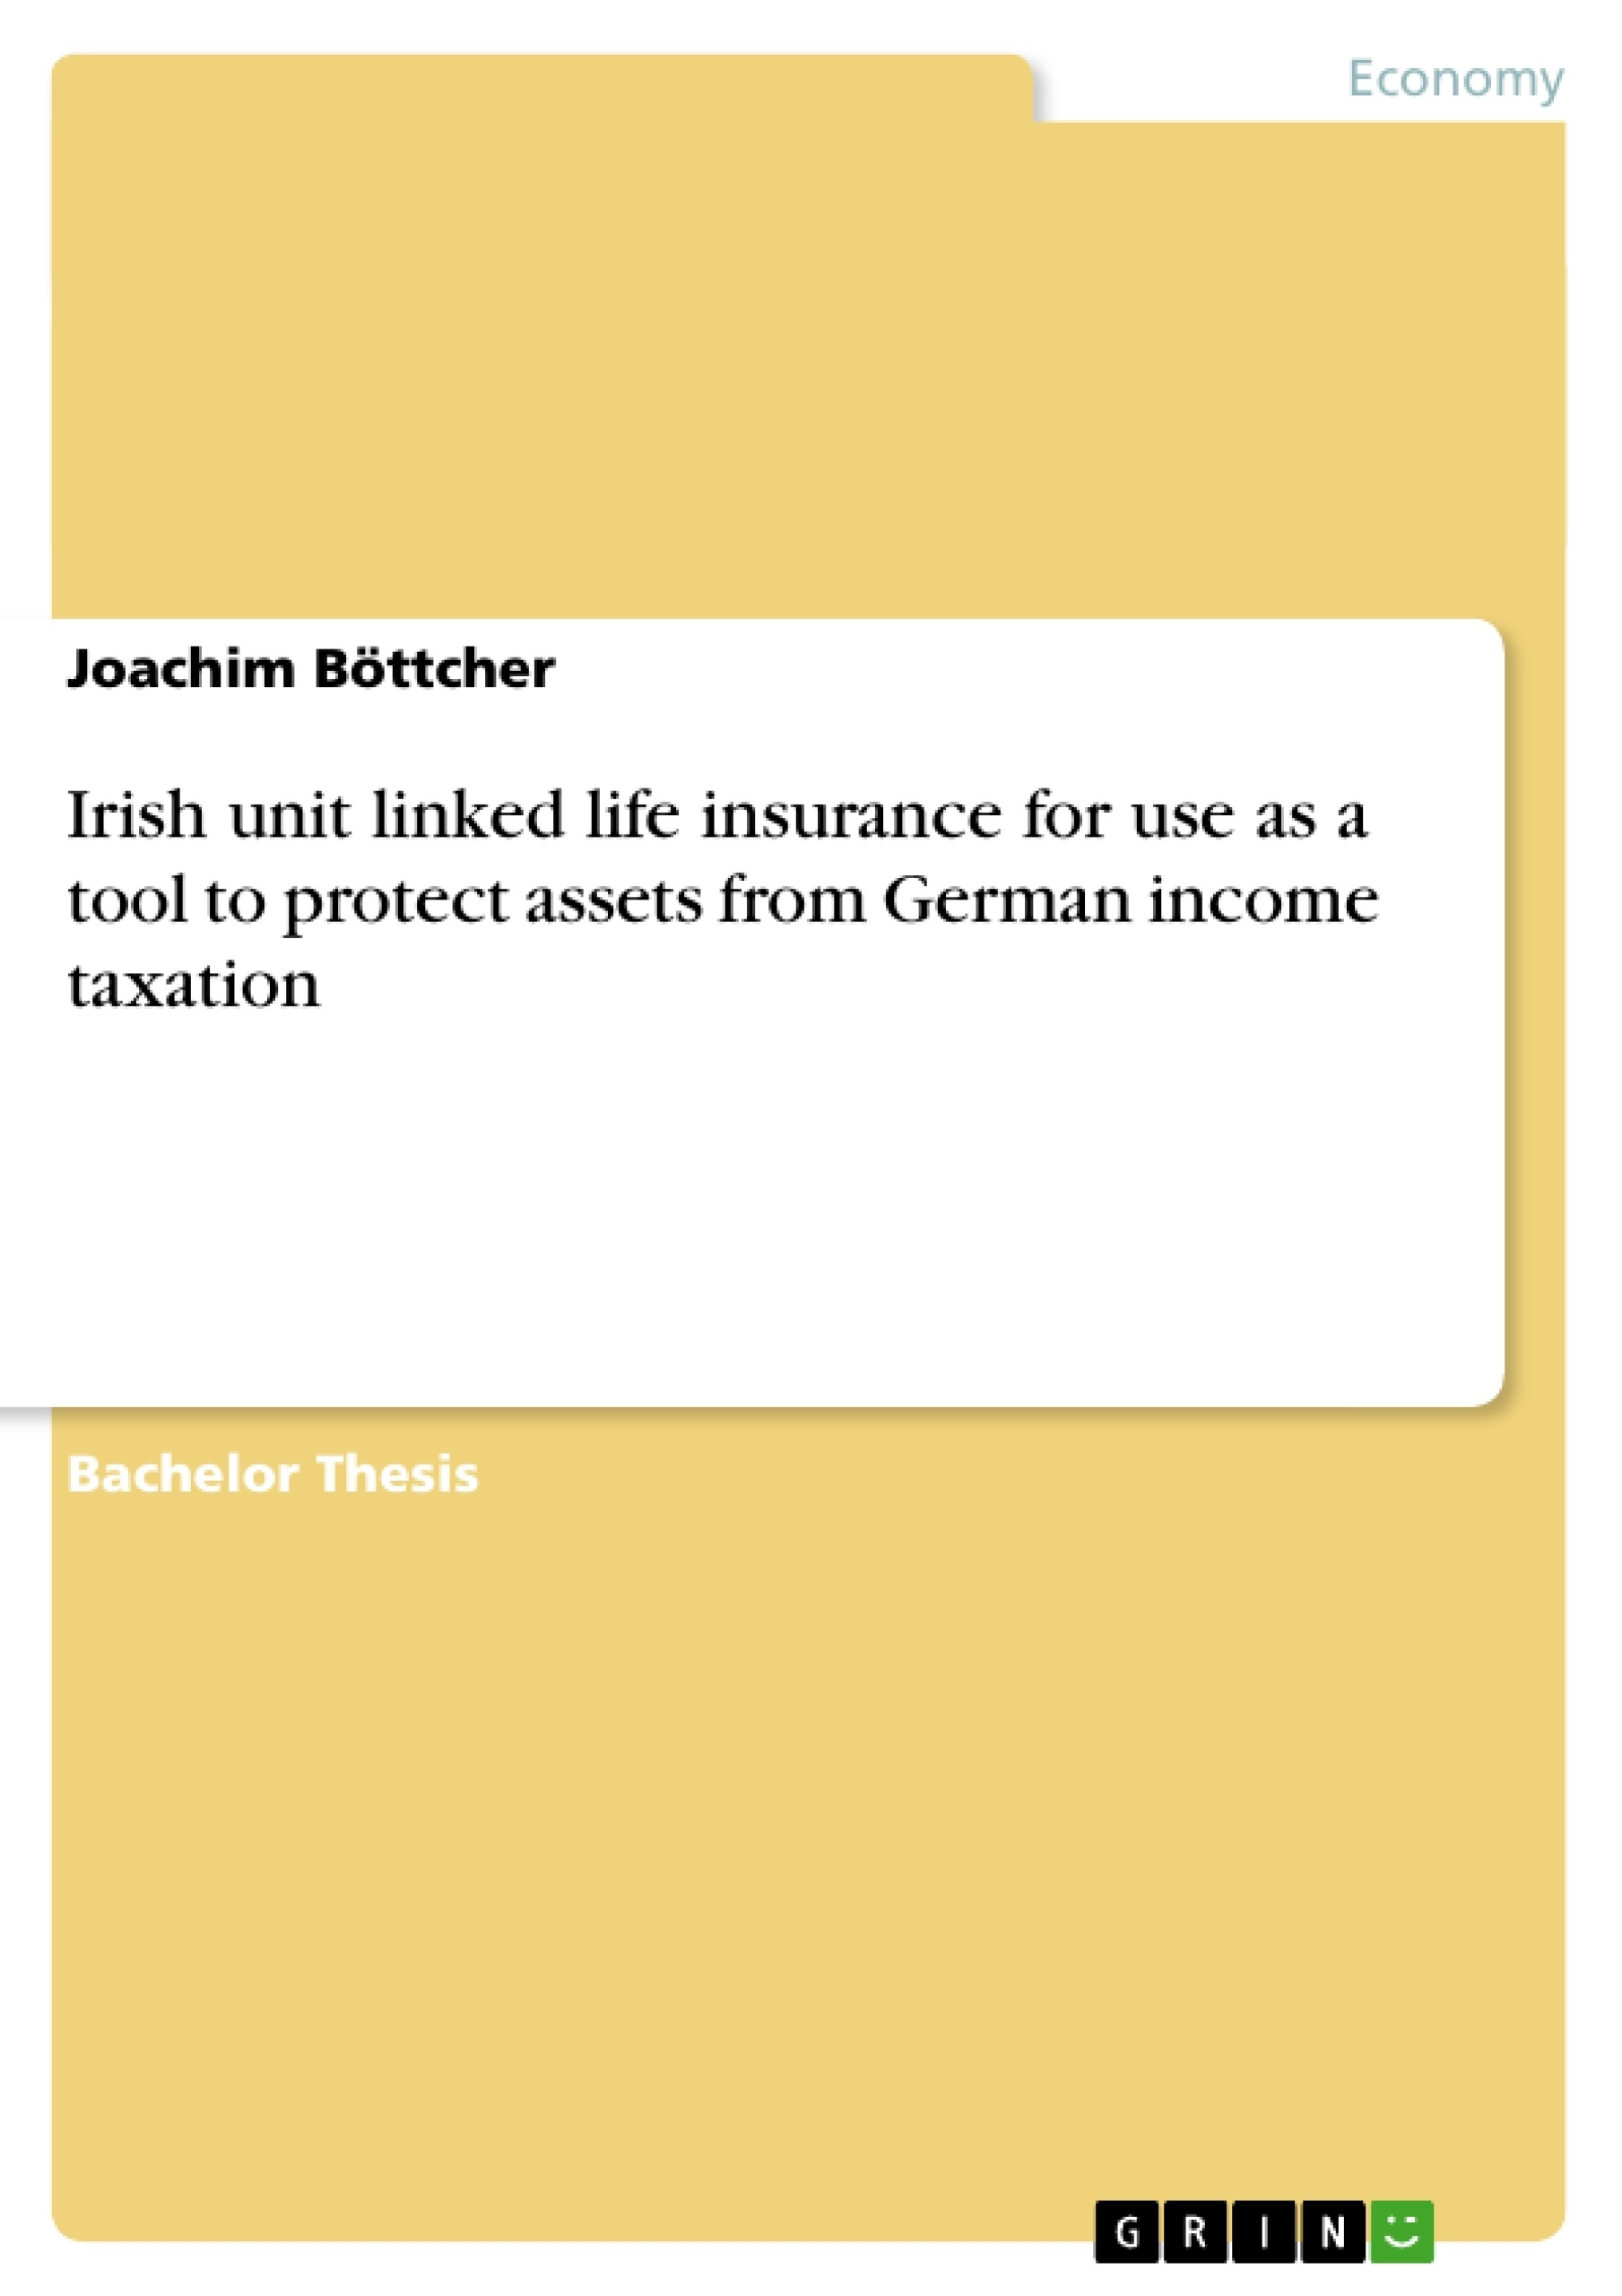 Title: Irish unit linked life insurance for use as a tool to protect assets from German income taxation